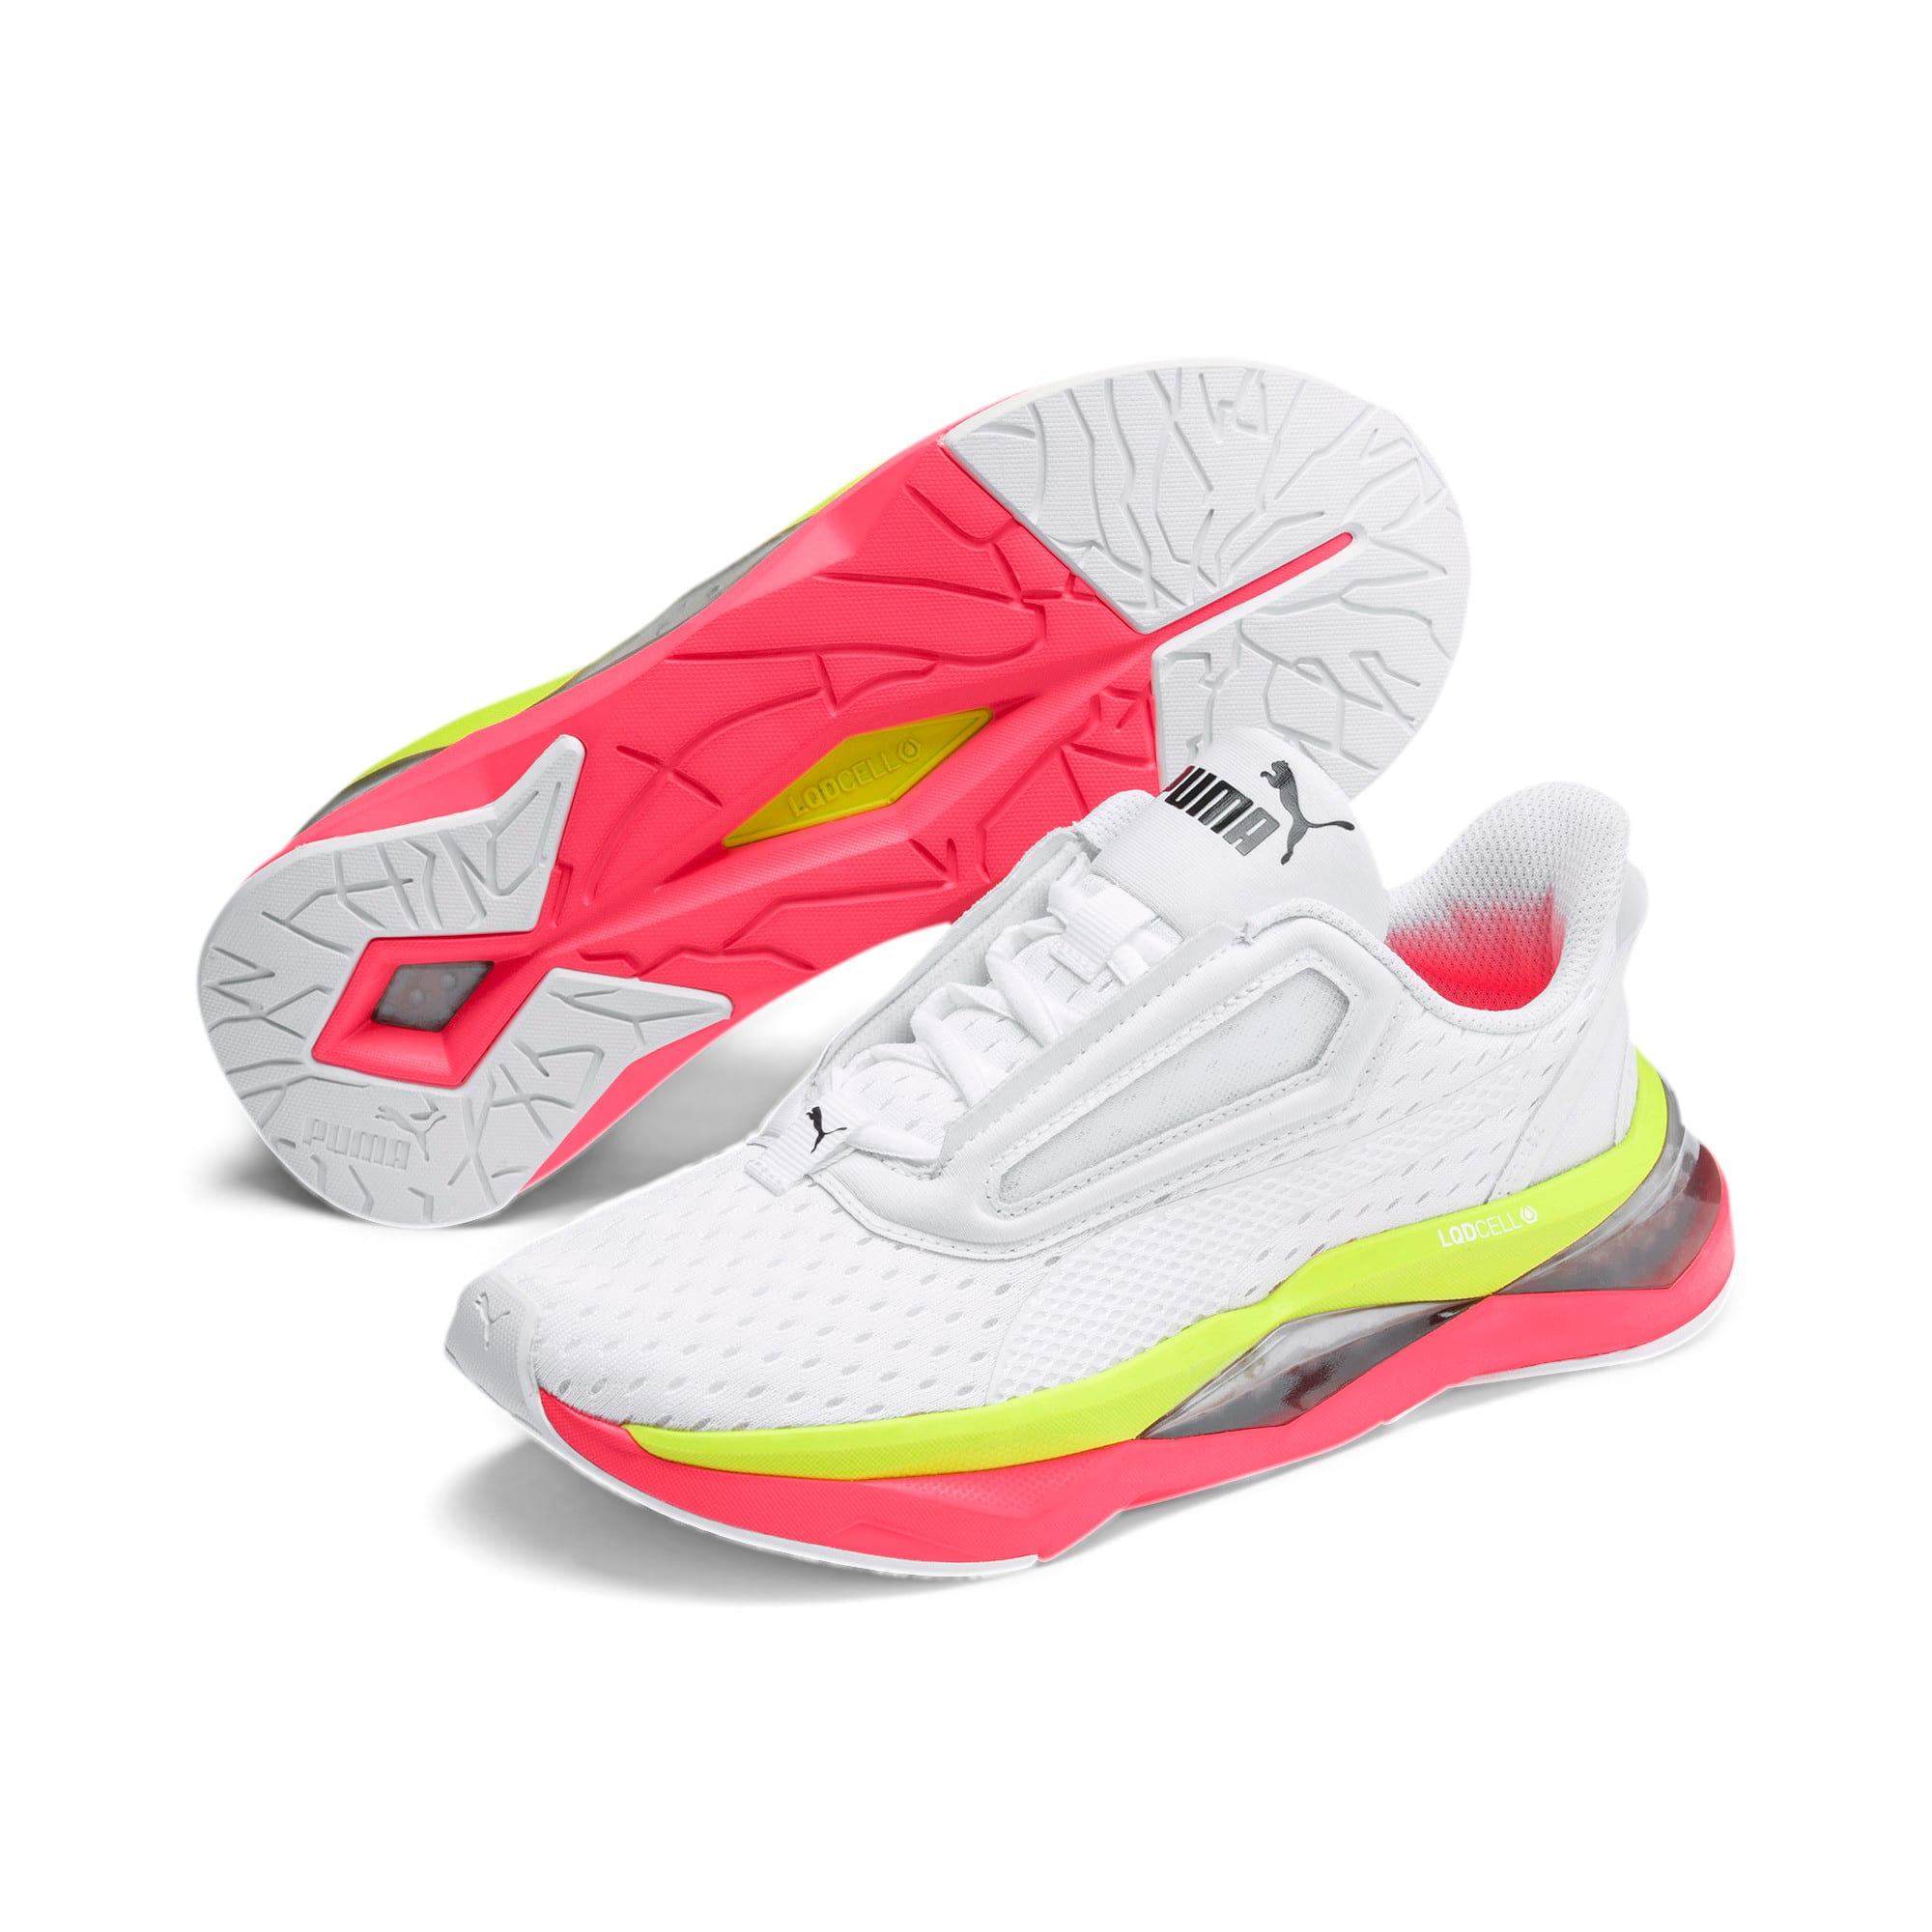 Thumbnail 3 of LQDCELL Shatter XT Damen Trainingsschuhe, Puma White-Pink Alert, medium